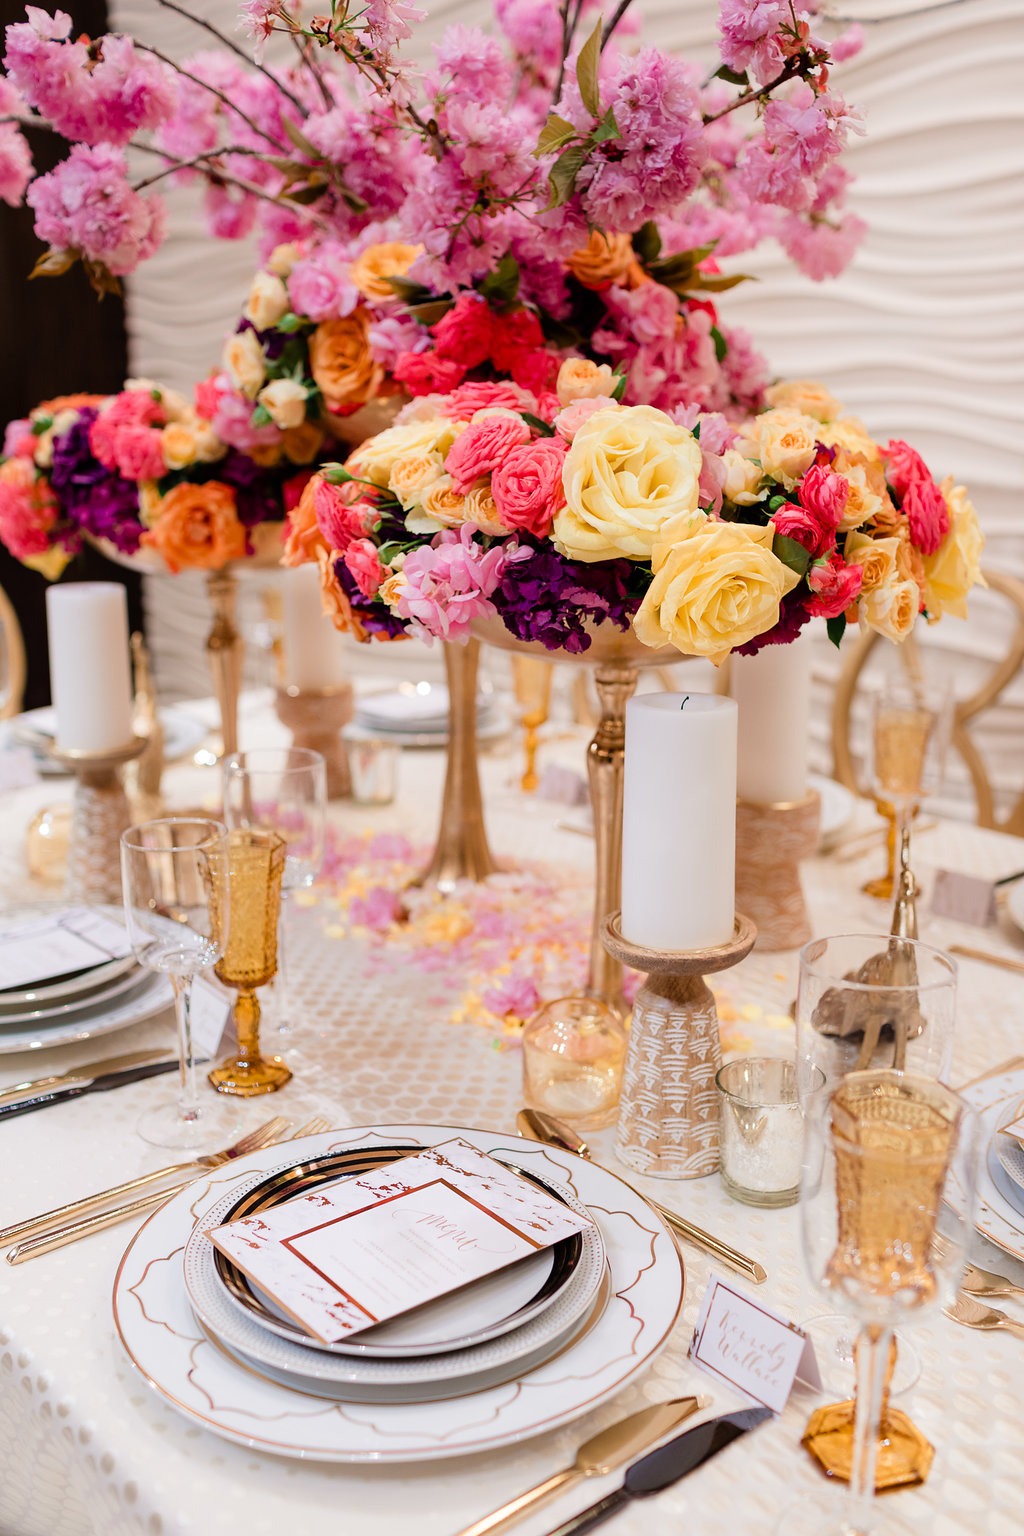 florist-intrigue-design-andrew-roby-events